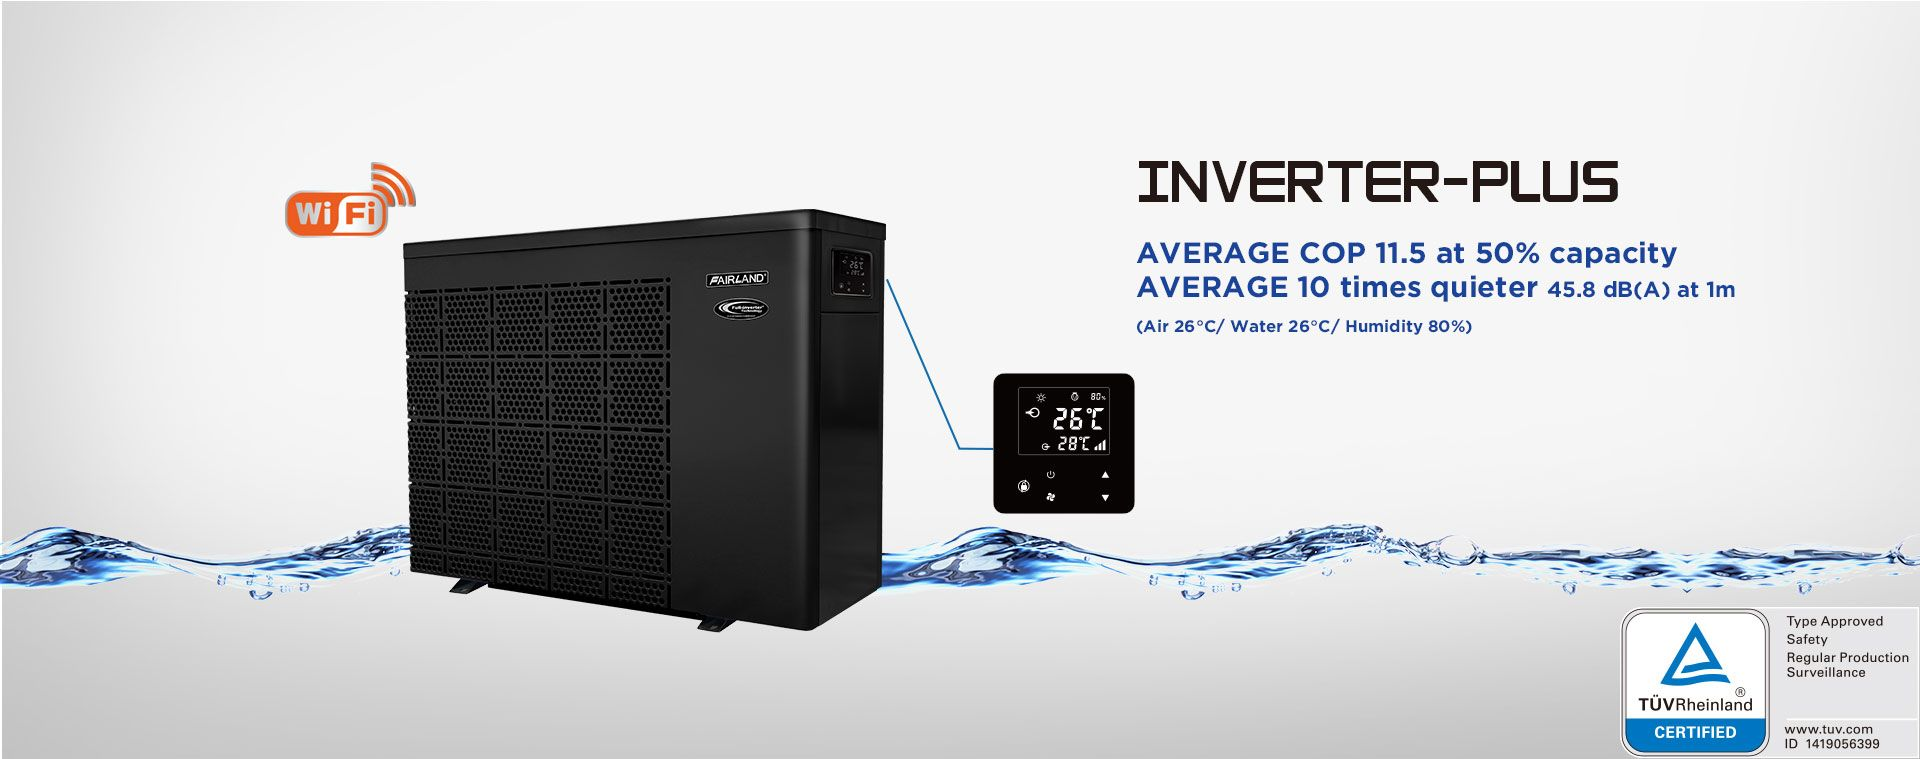 Wärmepumpe Pool Inverter Inverter Plus Fairland Full Inverter Pool Heat Pump The Best